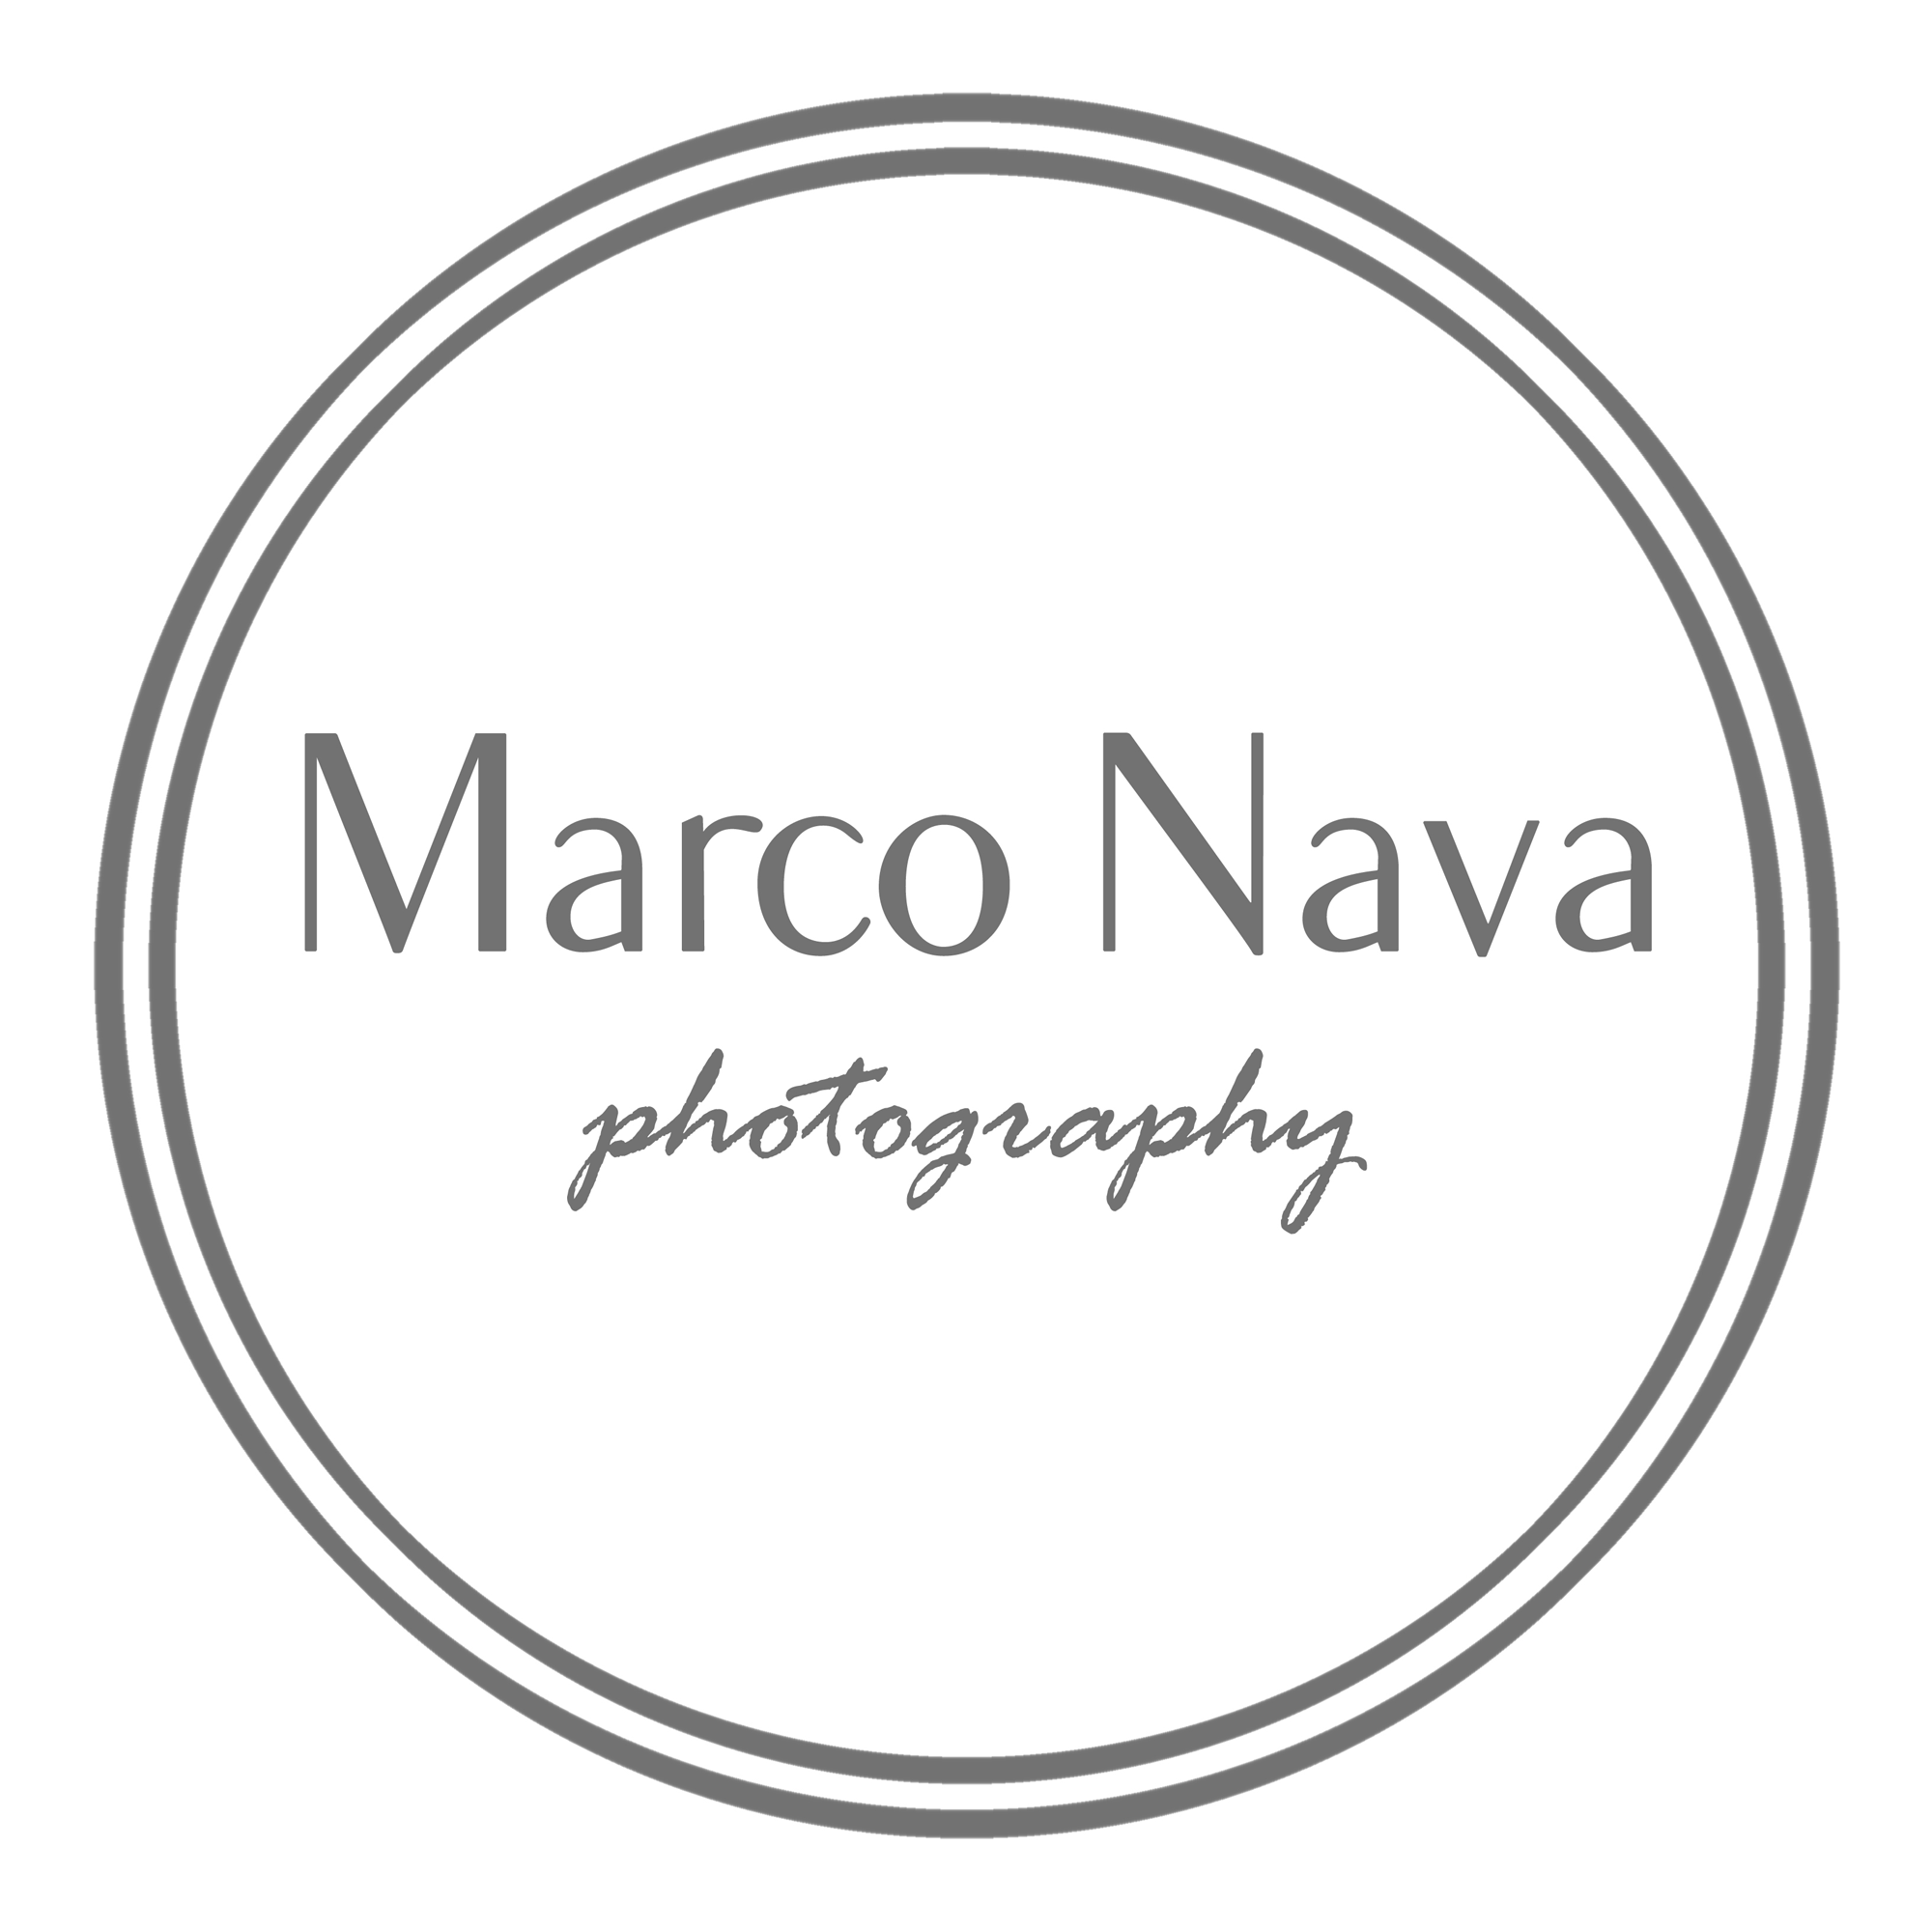 Marco Nava Photography